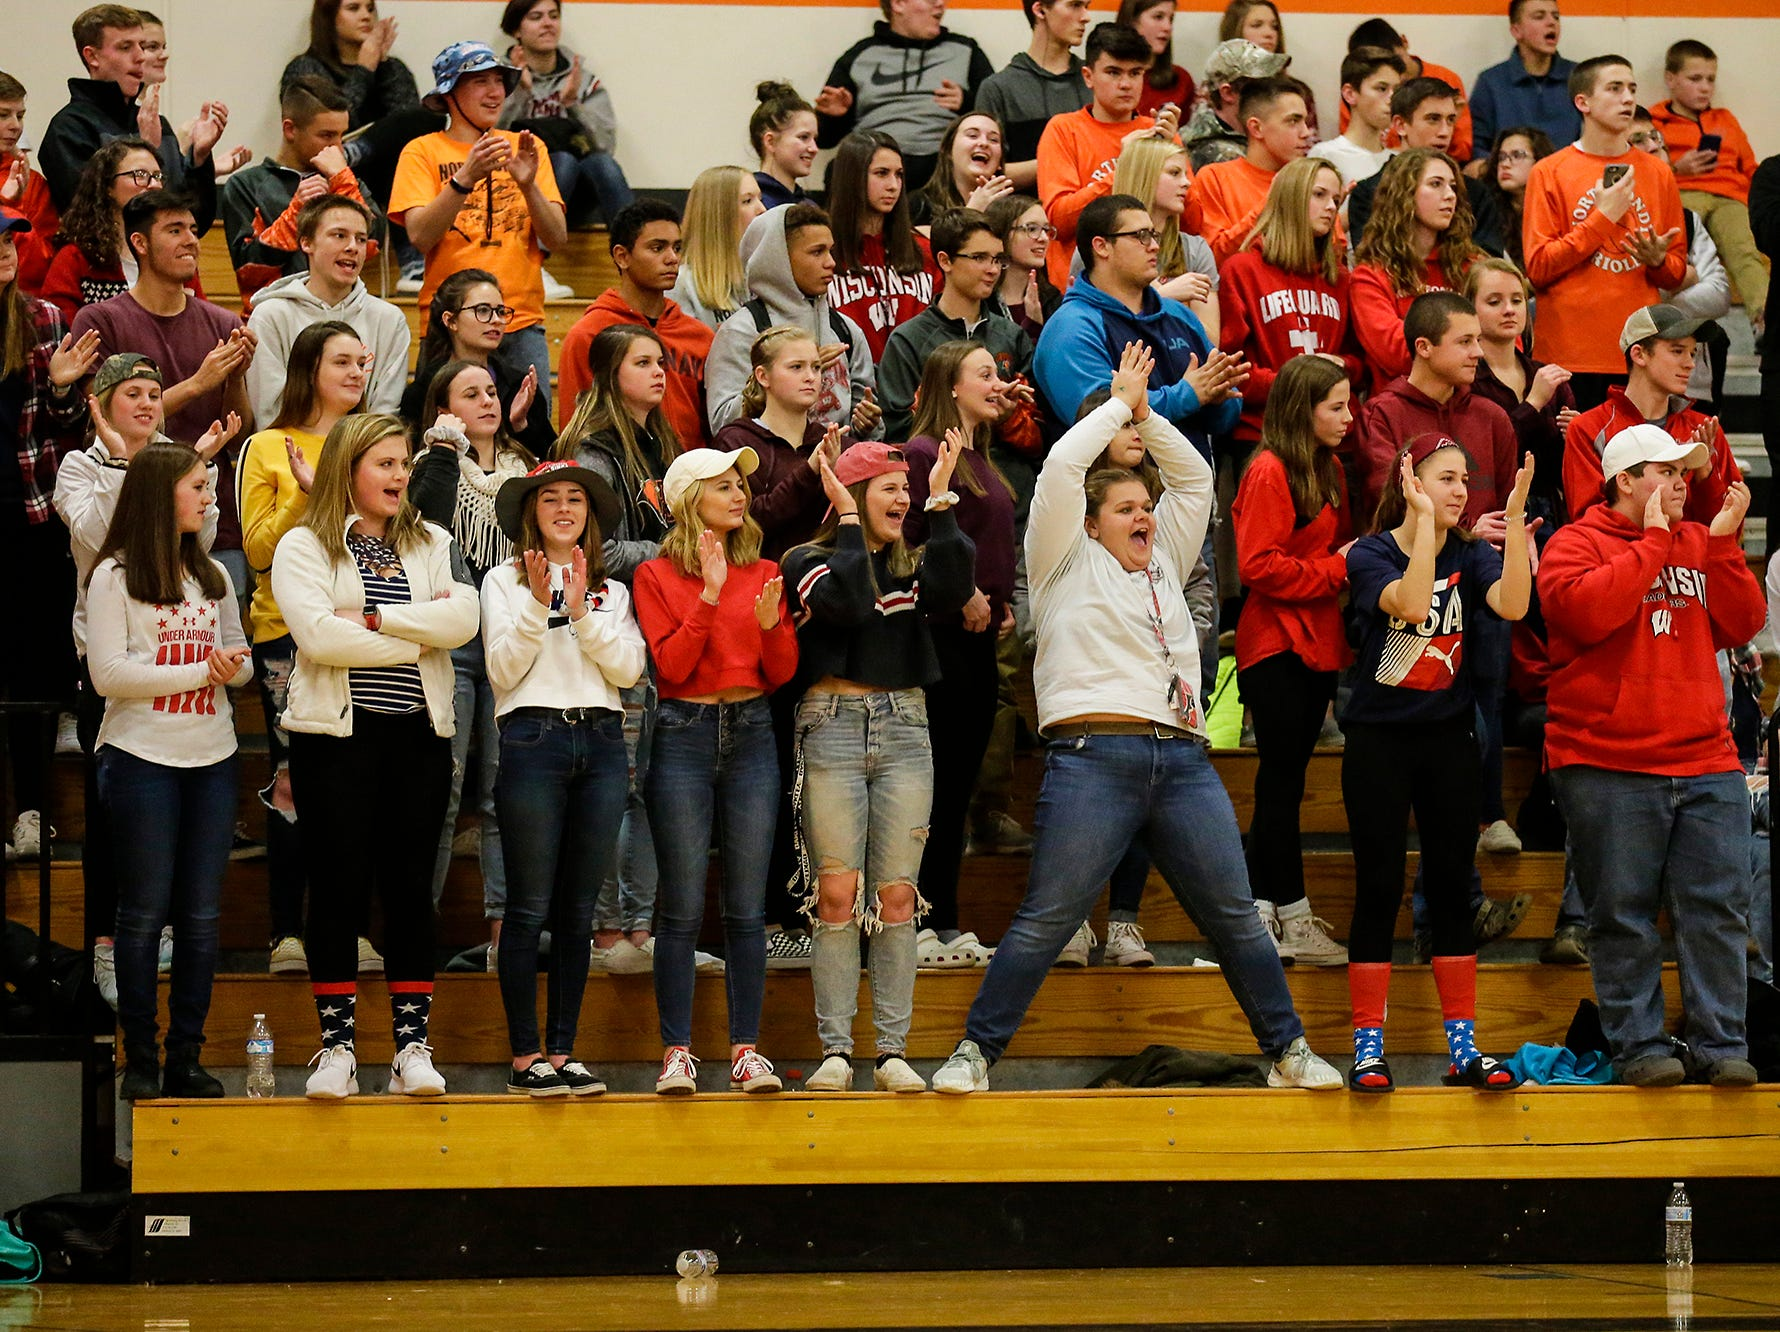 North Fond du Lac High School boys basketball fans react to a basket by Jacob Jaeger against St. Mary's Springs Academy during their game Friday, December 7, 2018 in North Fond du Lac, Wisconsin. Doug Raflik/USA TODAY NETWORK-Wisconsin